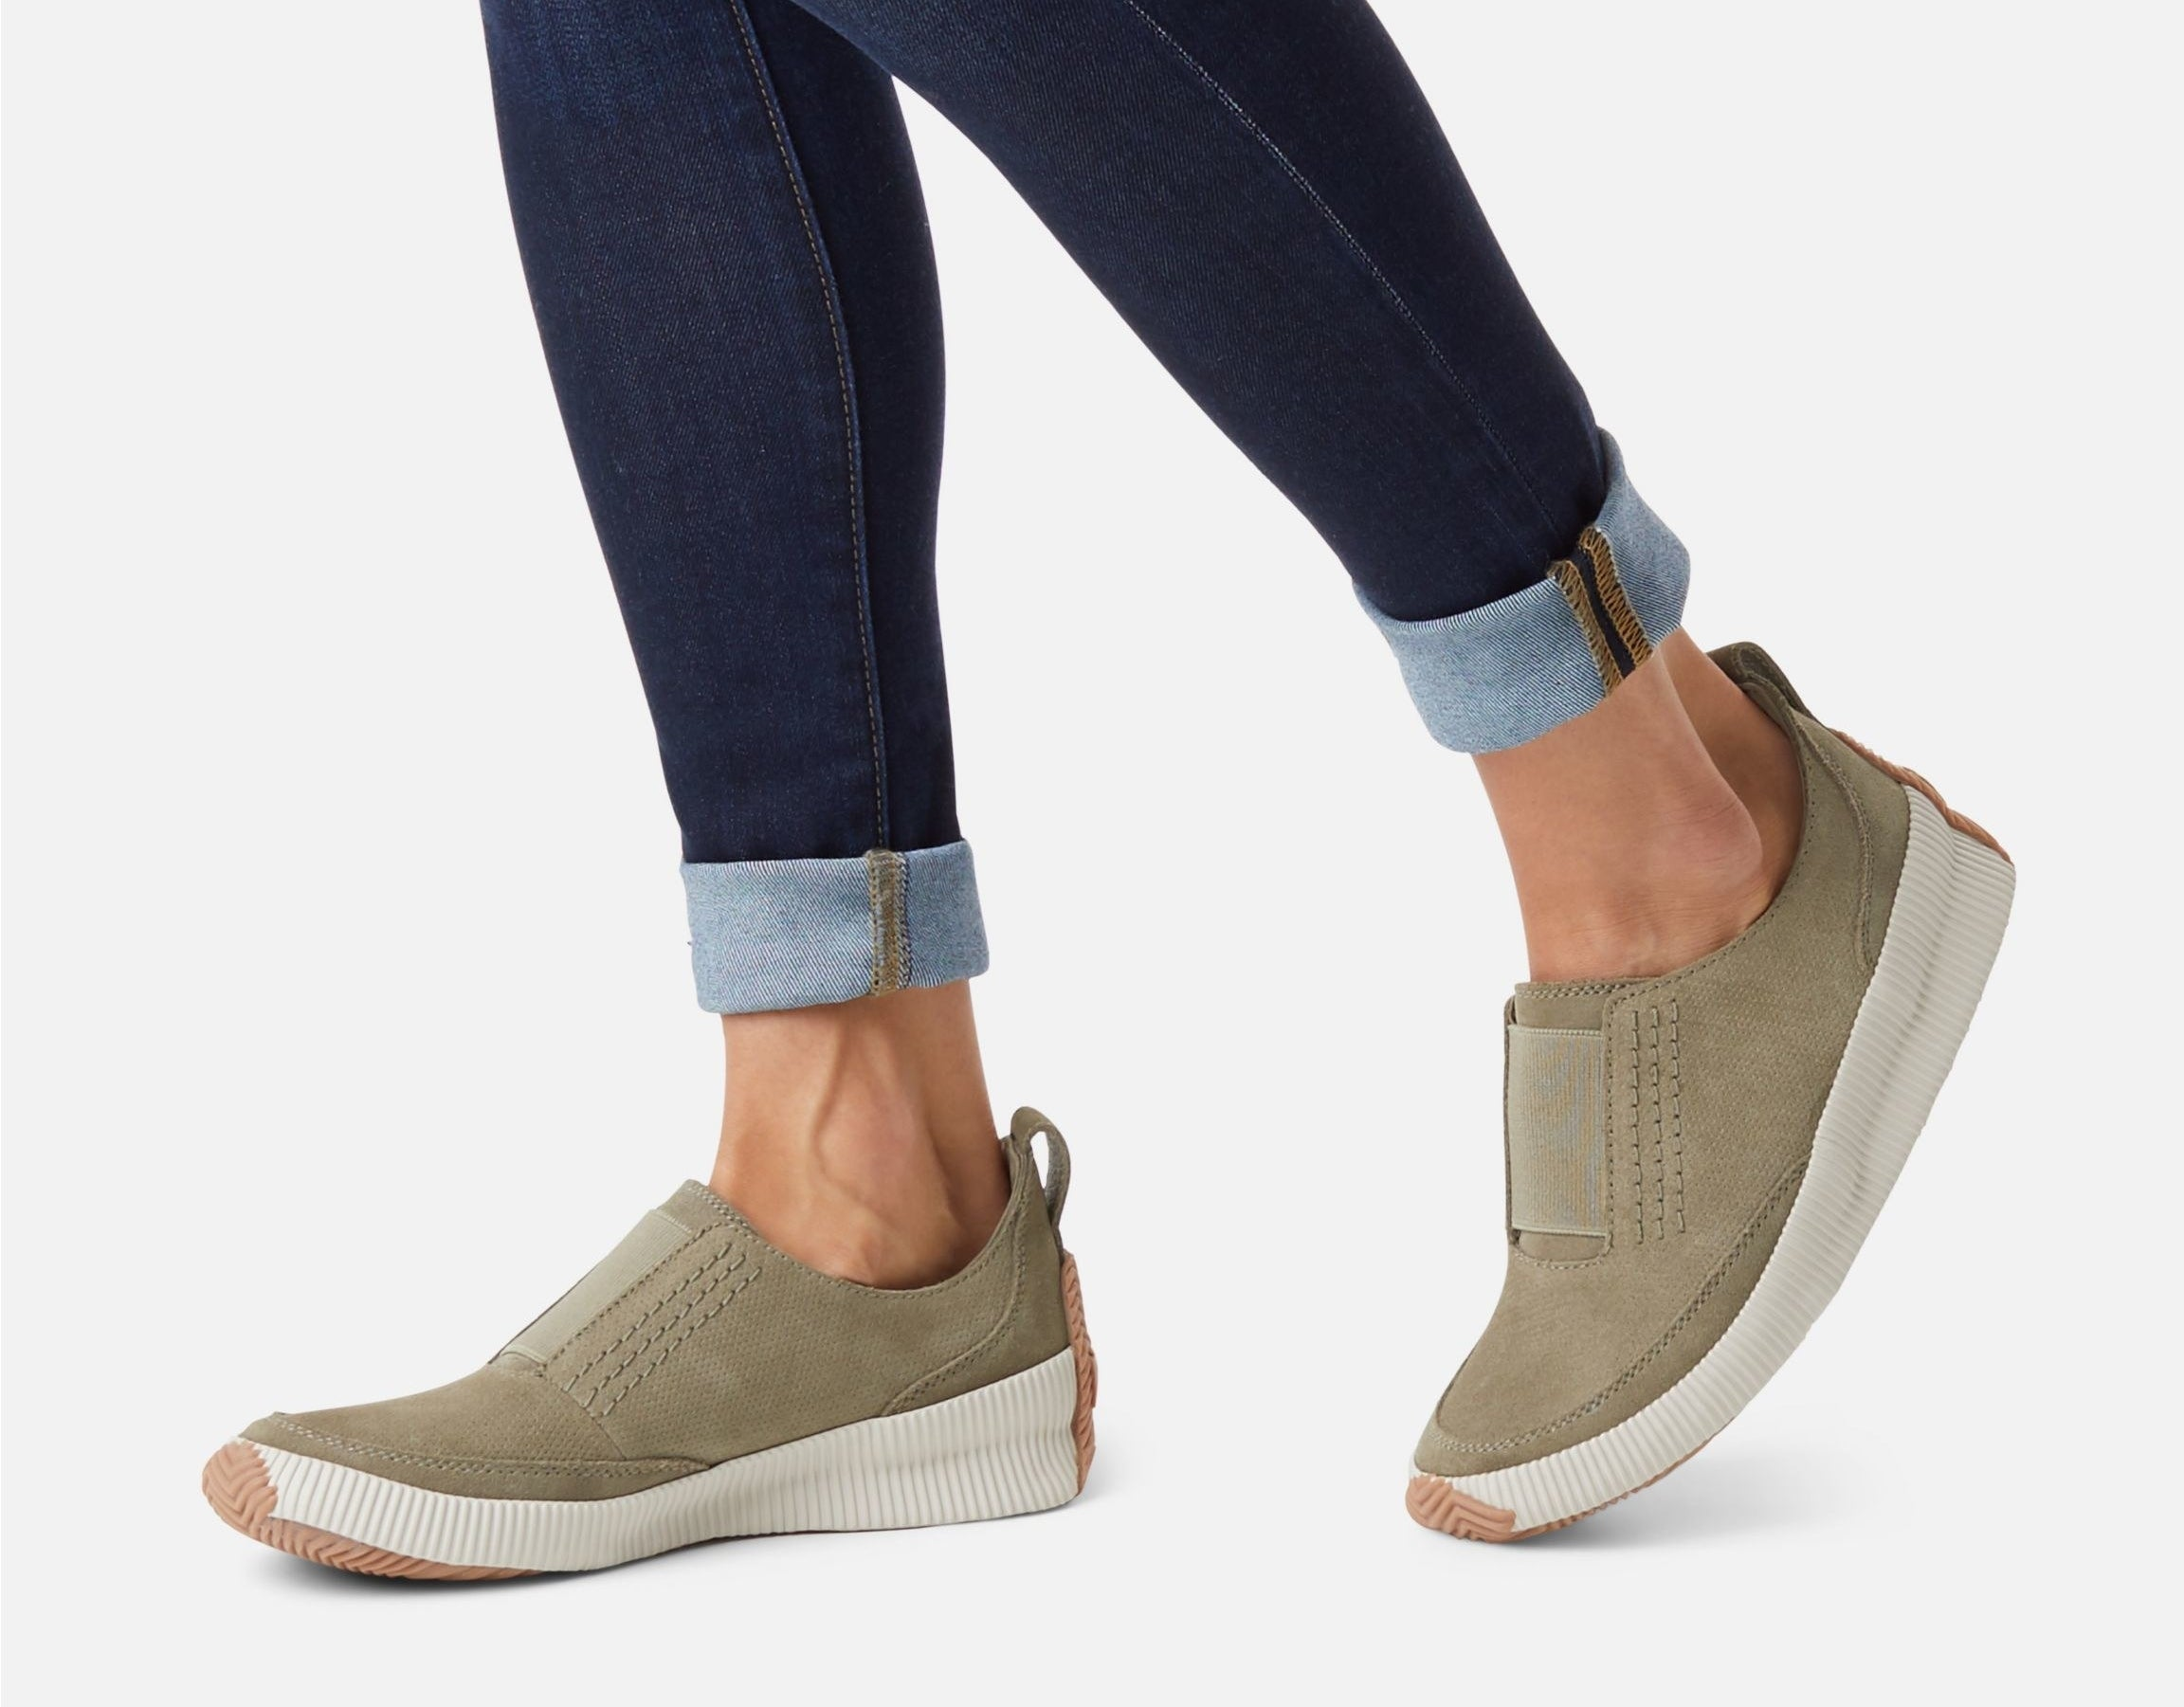 model wearing the slip-on shoes in the color sage